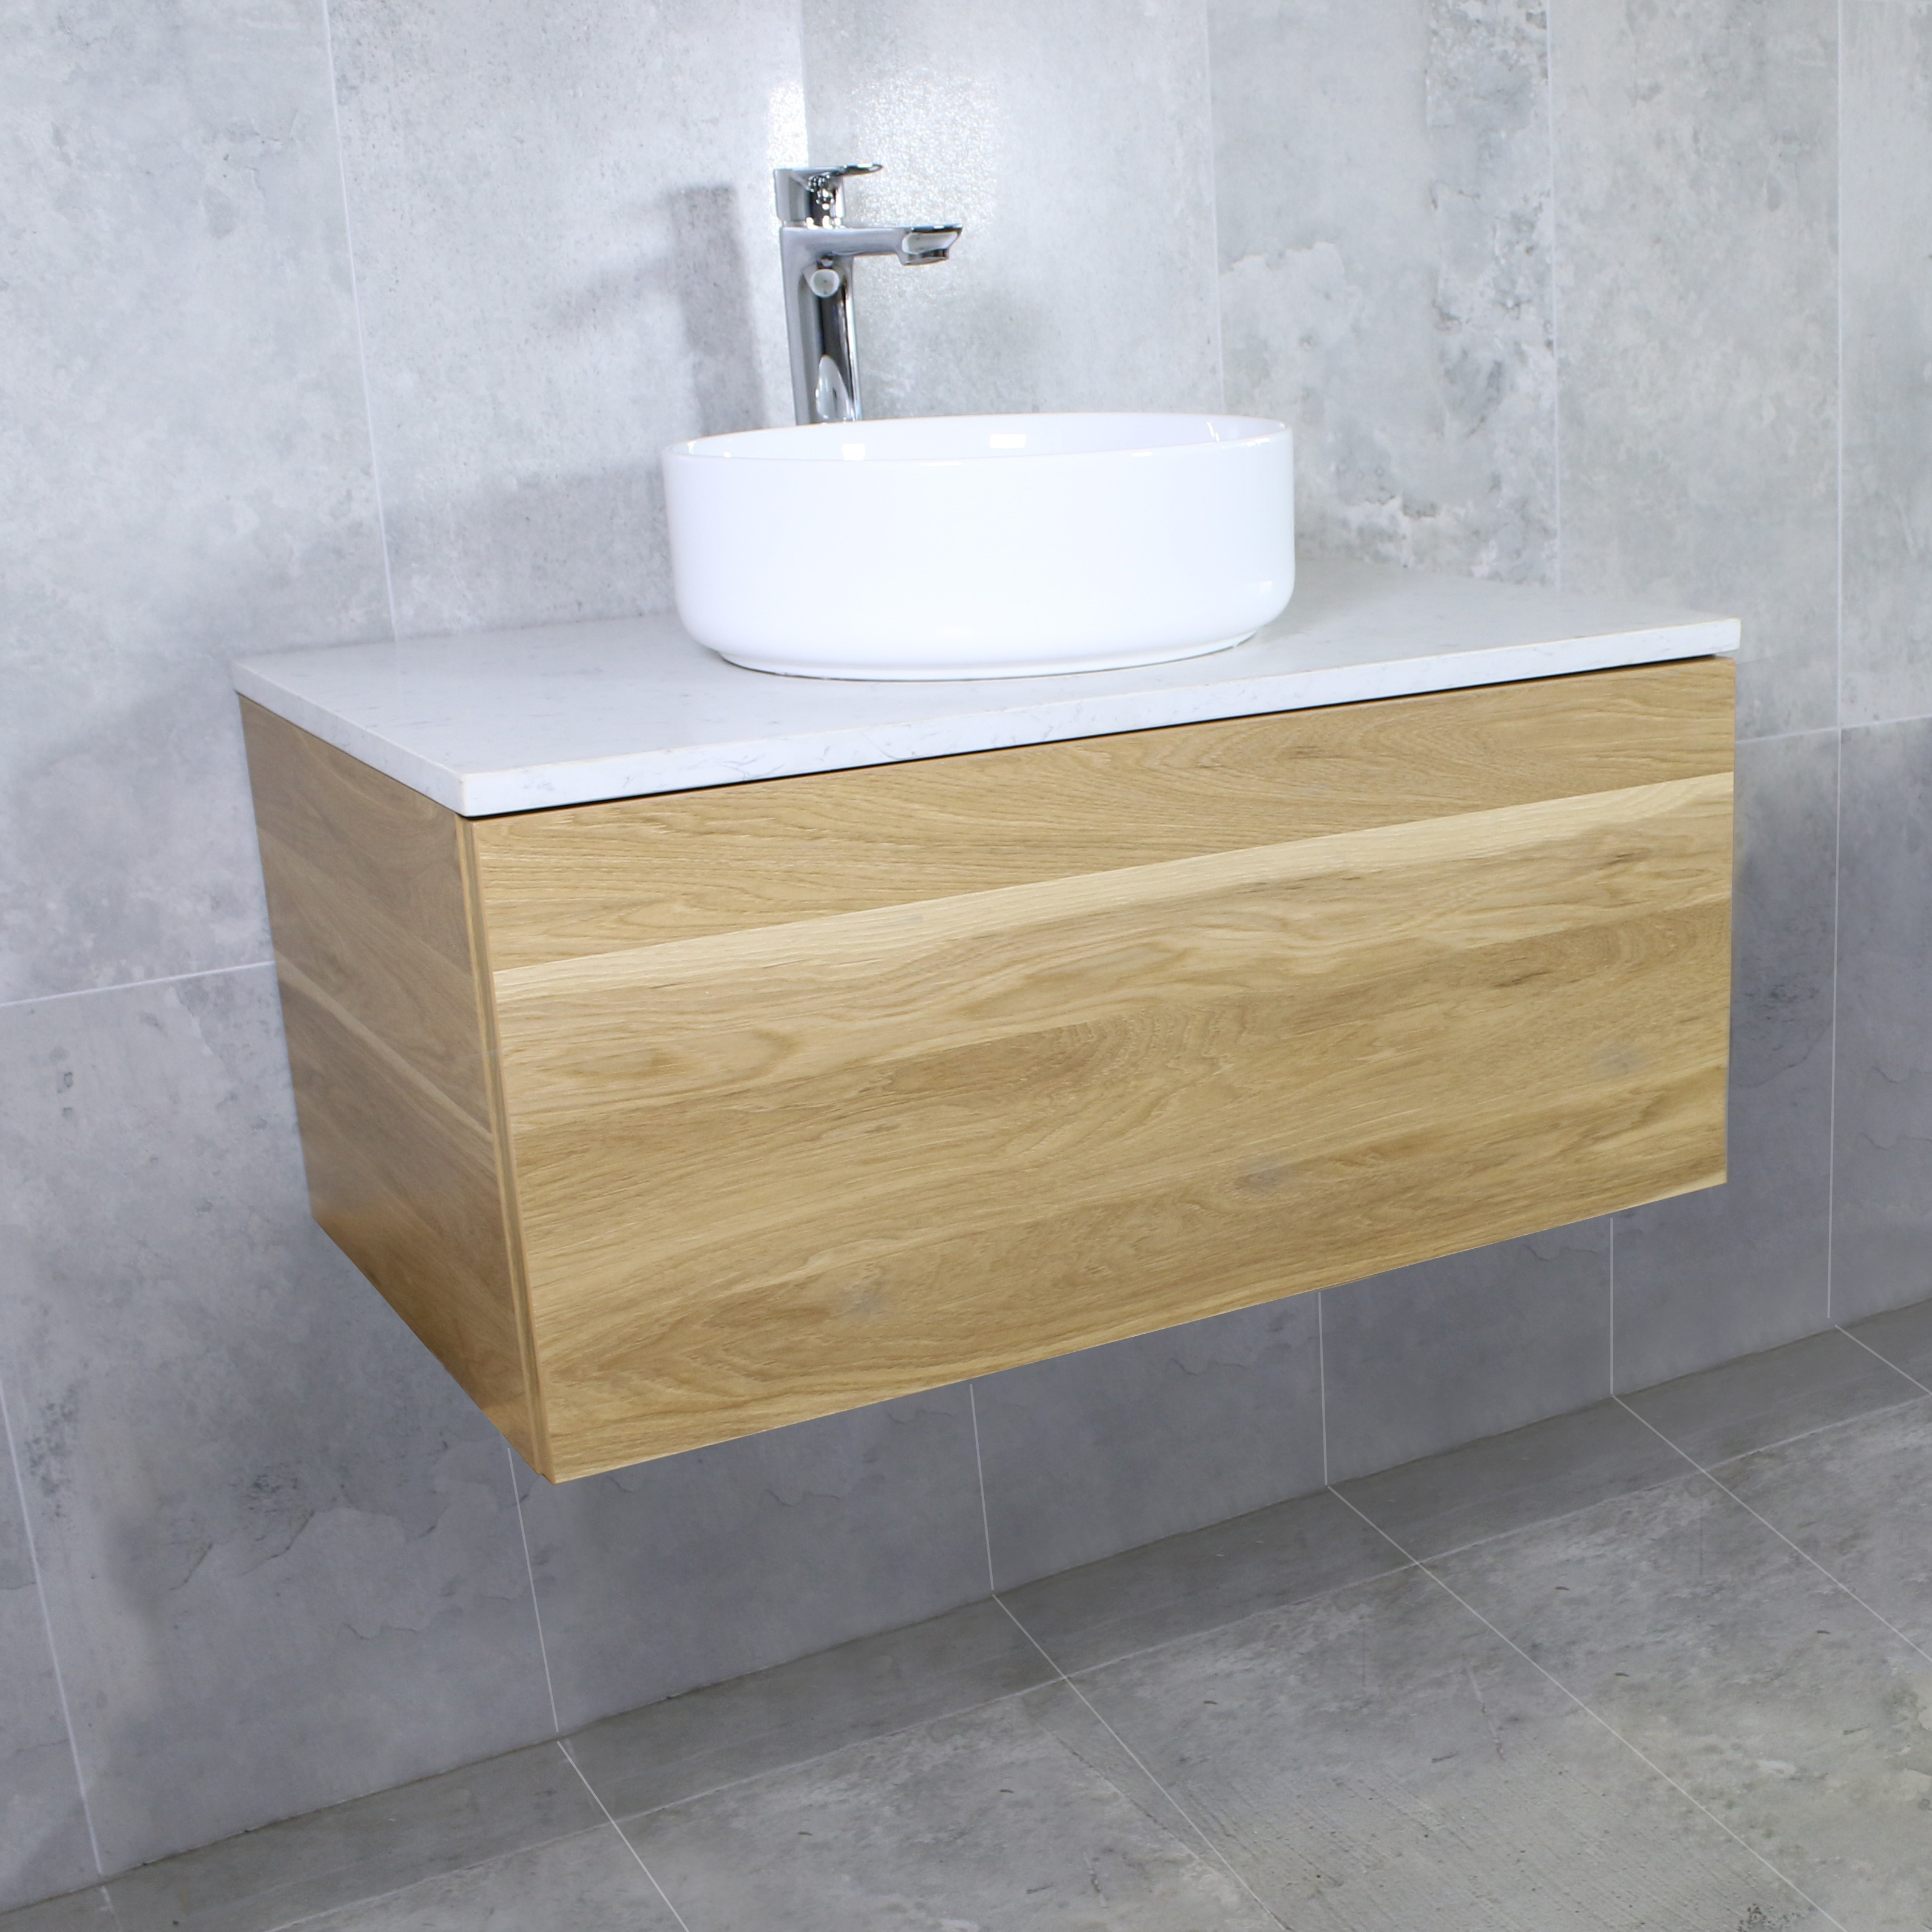 Best ideas about Wall Mounted Bathroom Cabinets . Save or Pin Eden Timber Wall Mount Vanity Cabinet without Top 750mm Now.